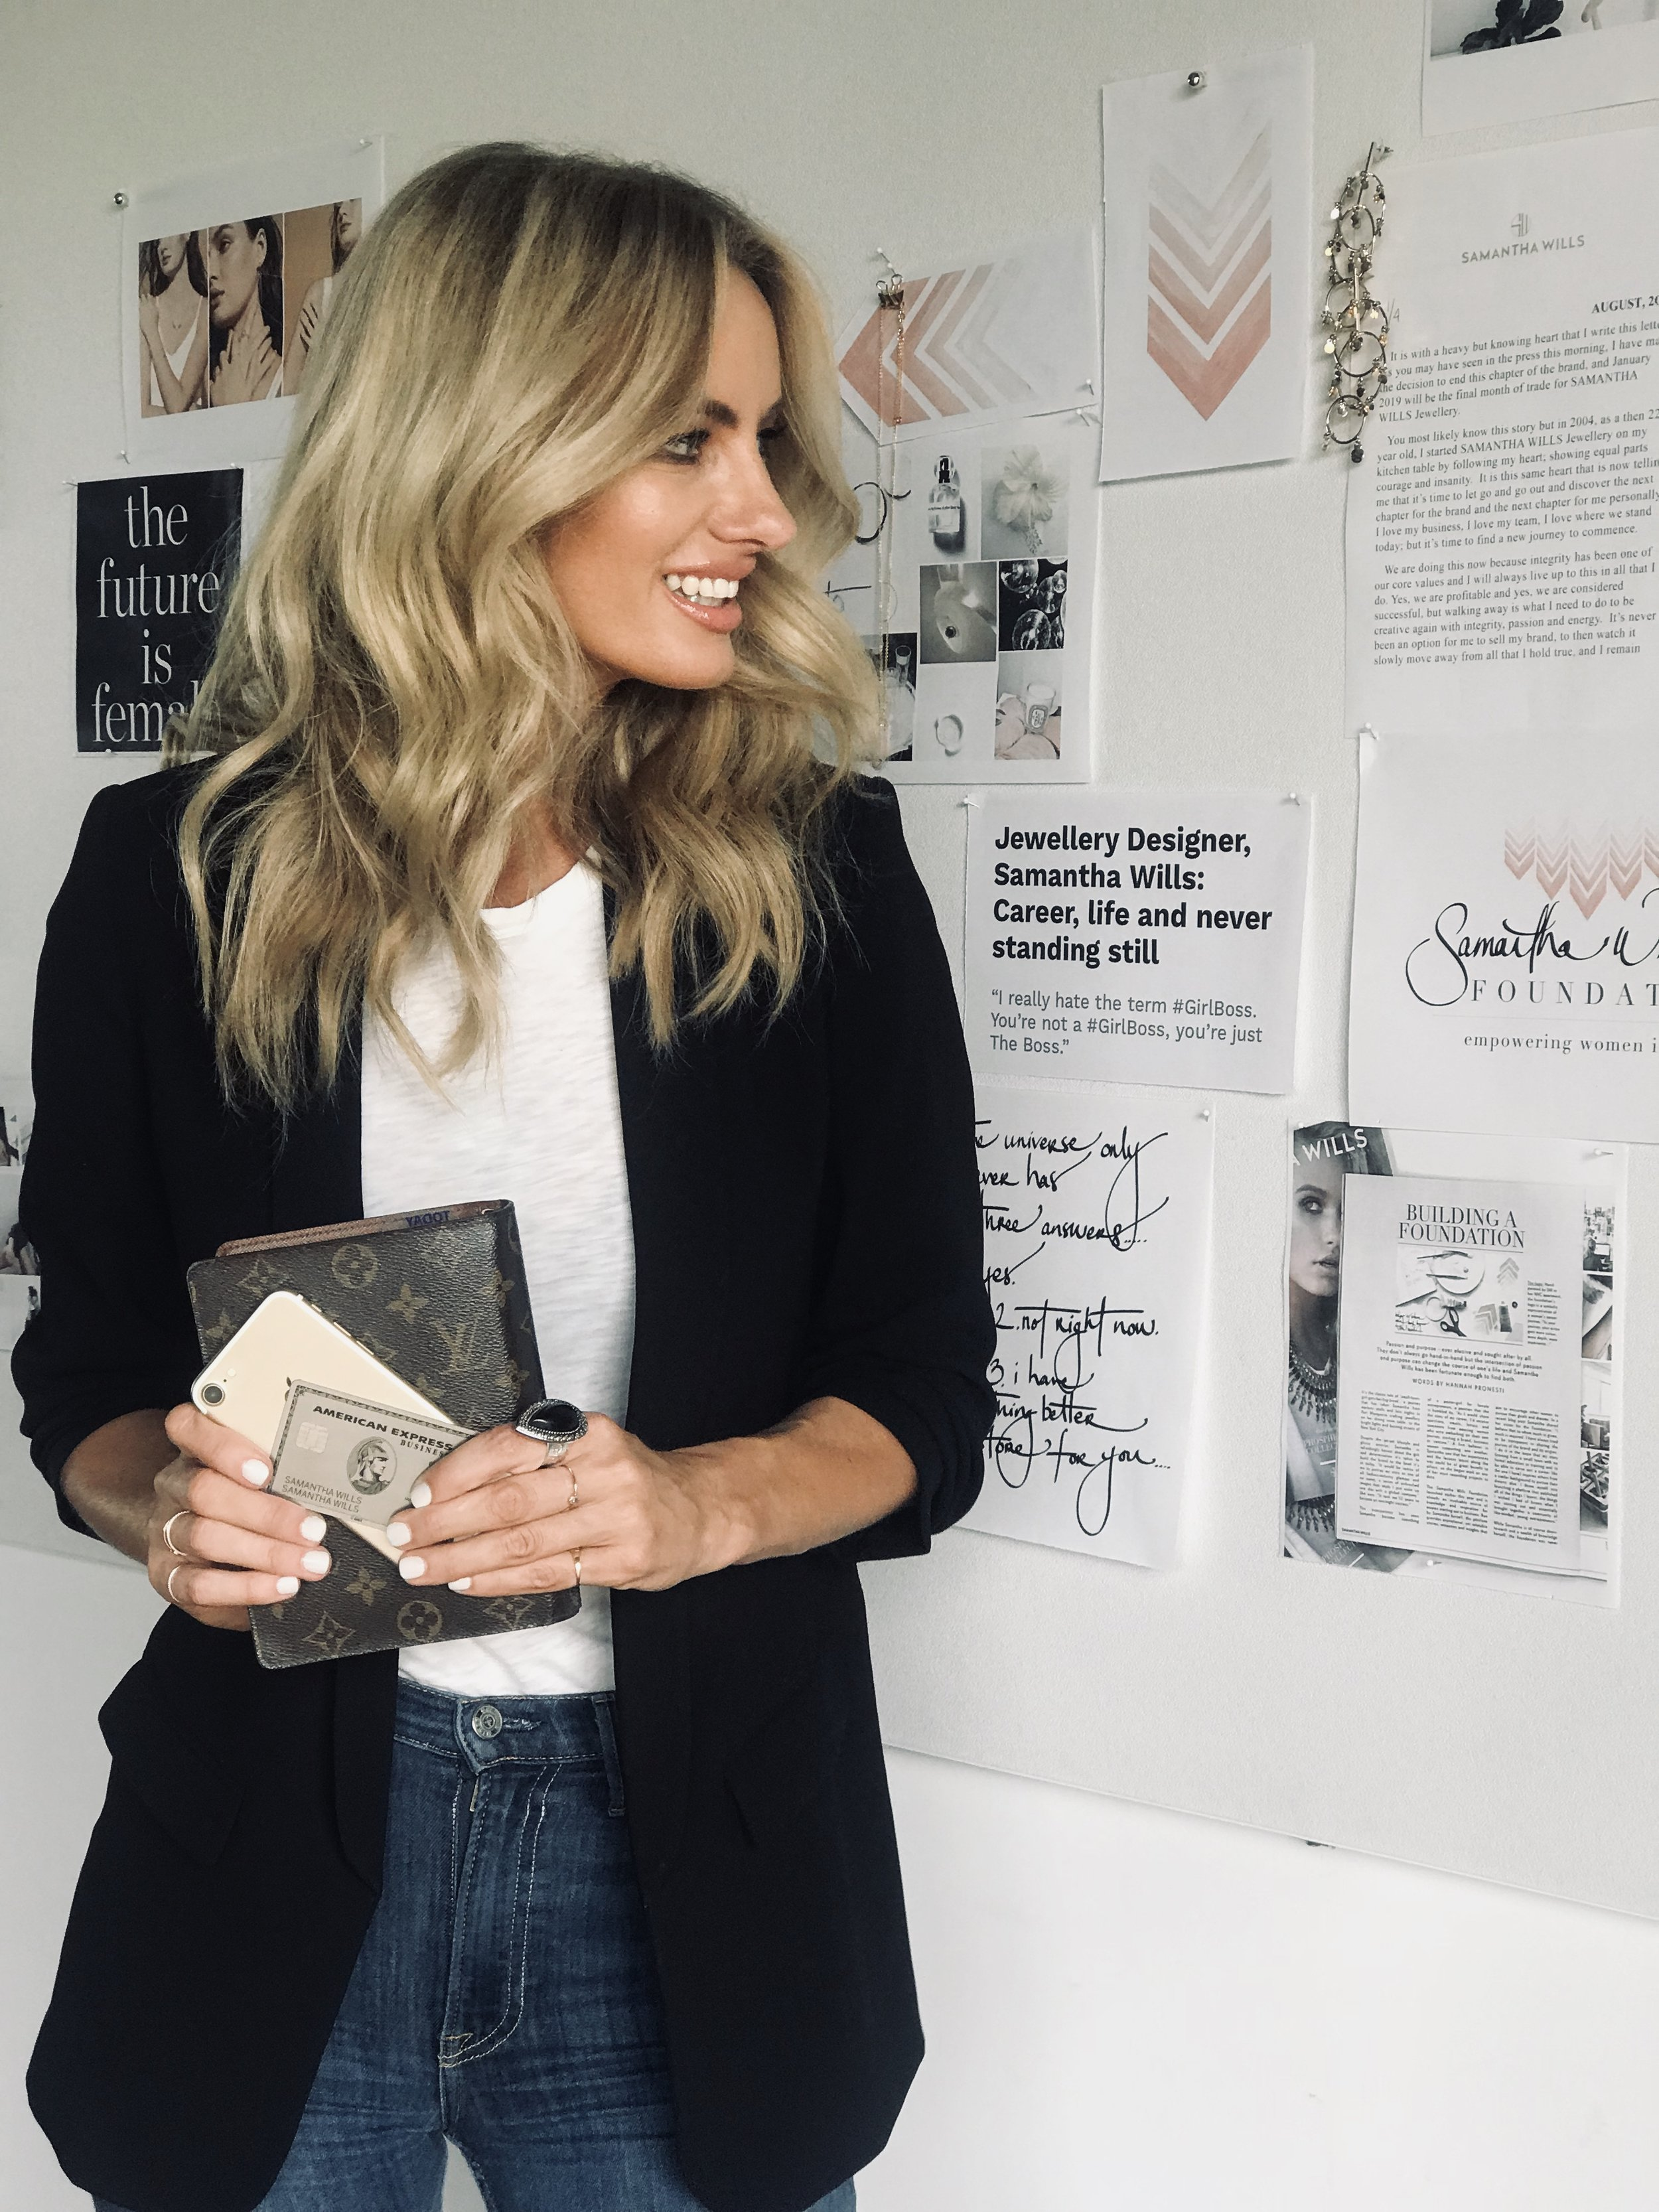 PODCAST: Building a Global Empire with a Cult Following with Samantha Wills - WITH MELISSA AMBROSINI